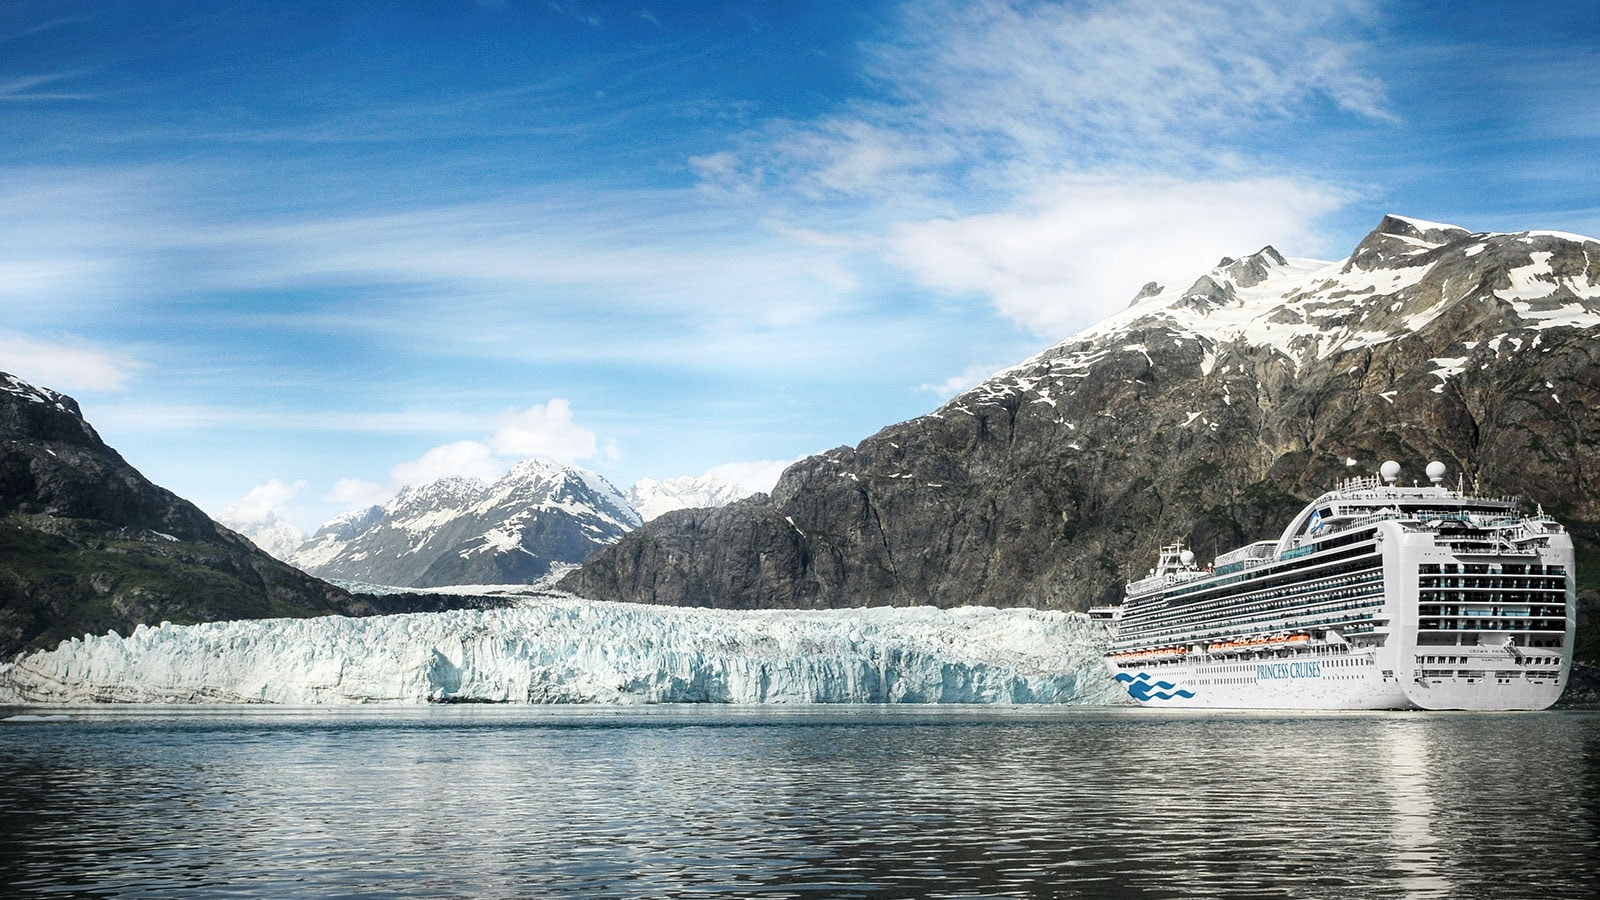 Princess cruise ship on a voyage of the glaciers Alaska cruise